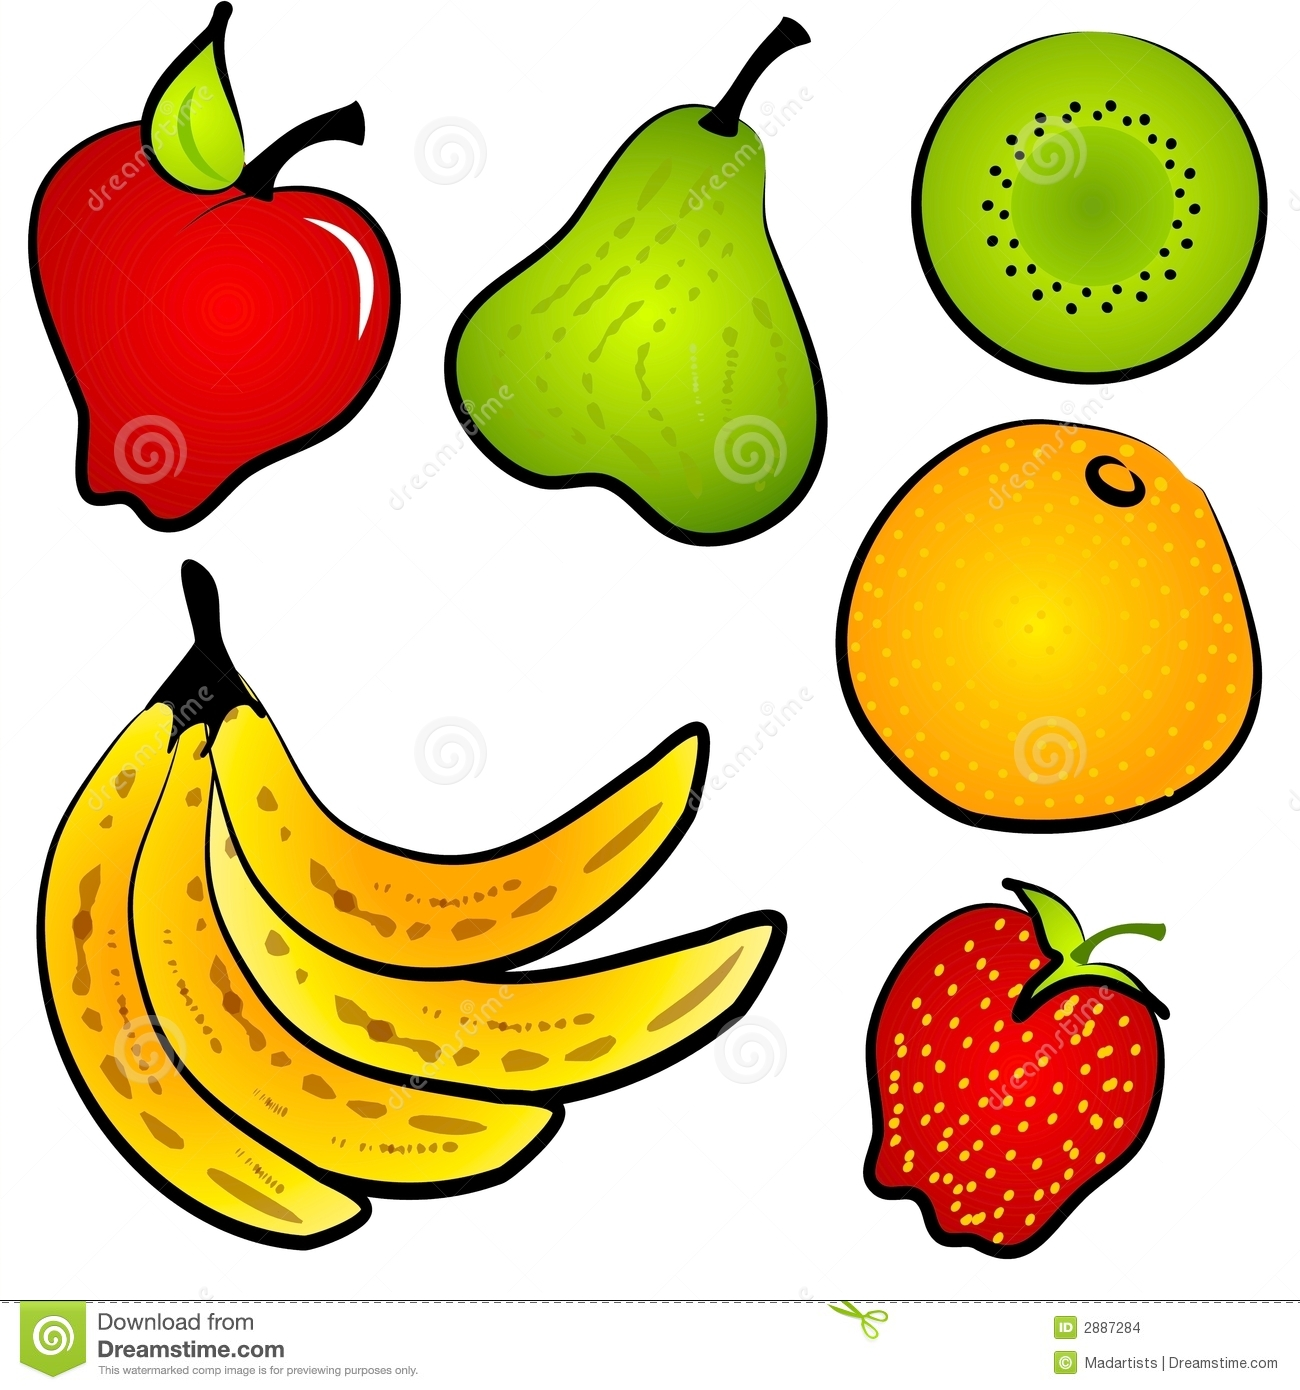 Clip art healthy food.